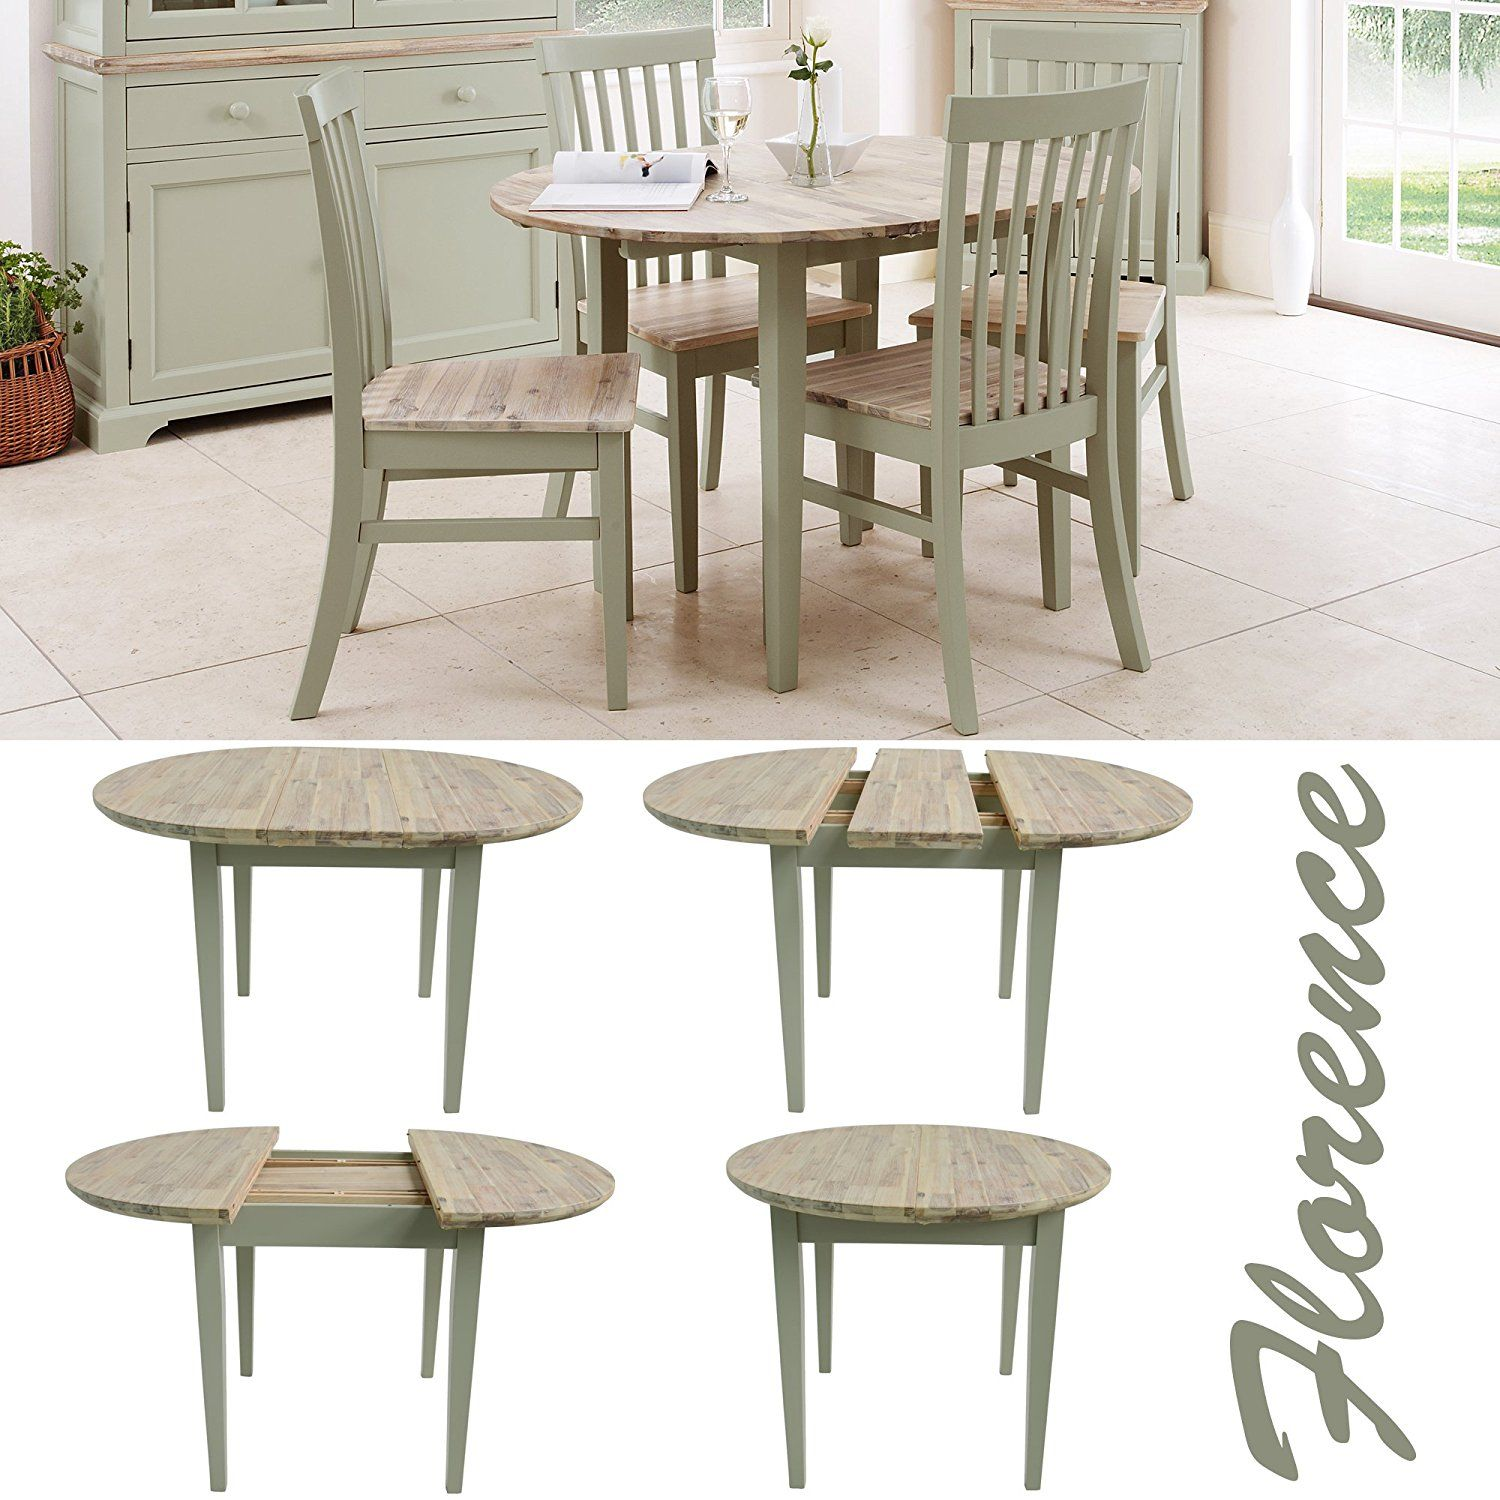 Florence Round Florence Round Extended Table Random Table Round Kitchen Kitchen